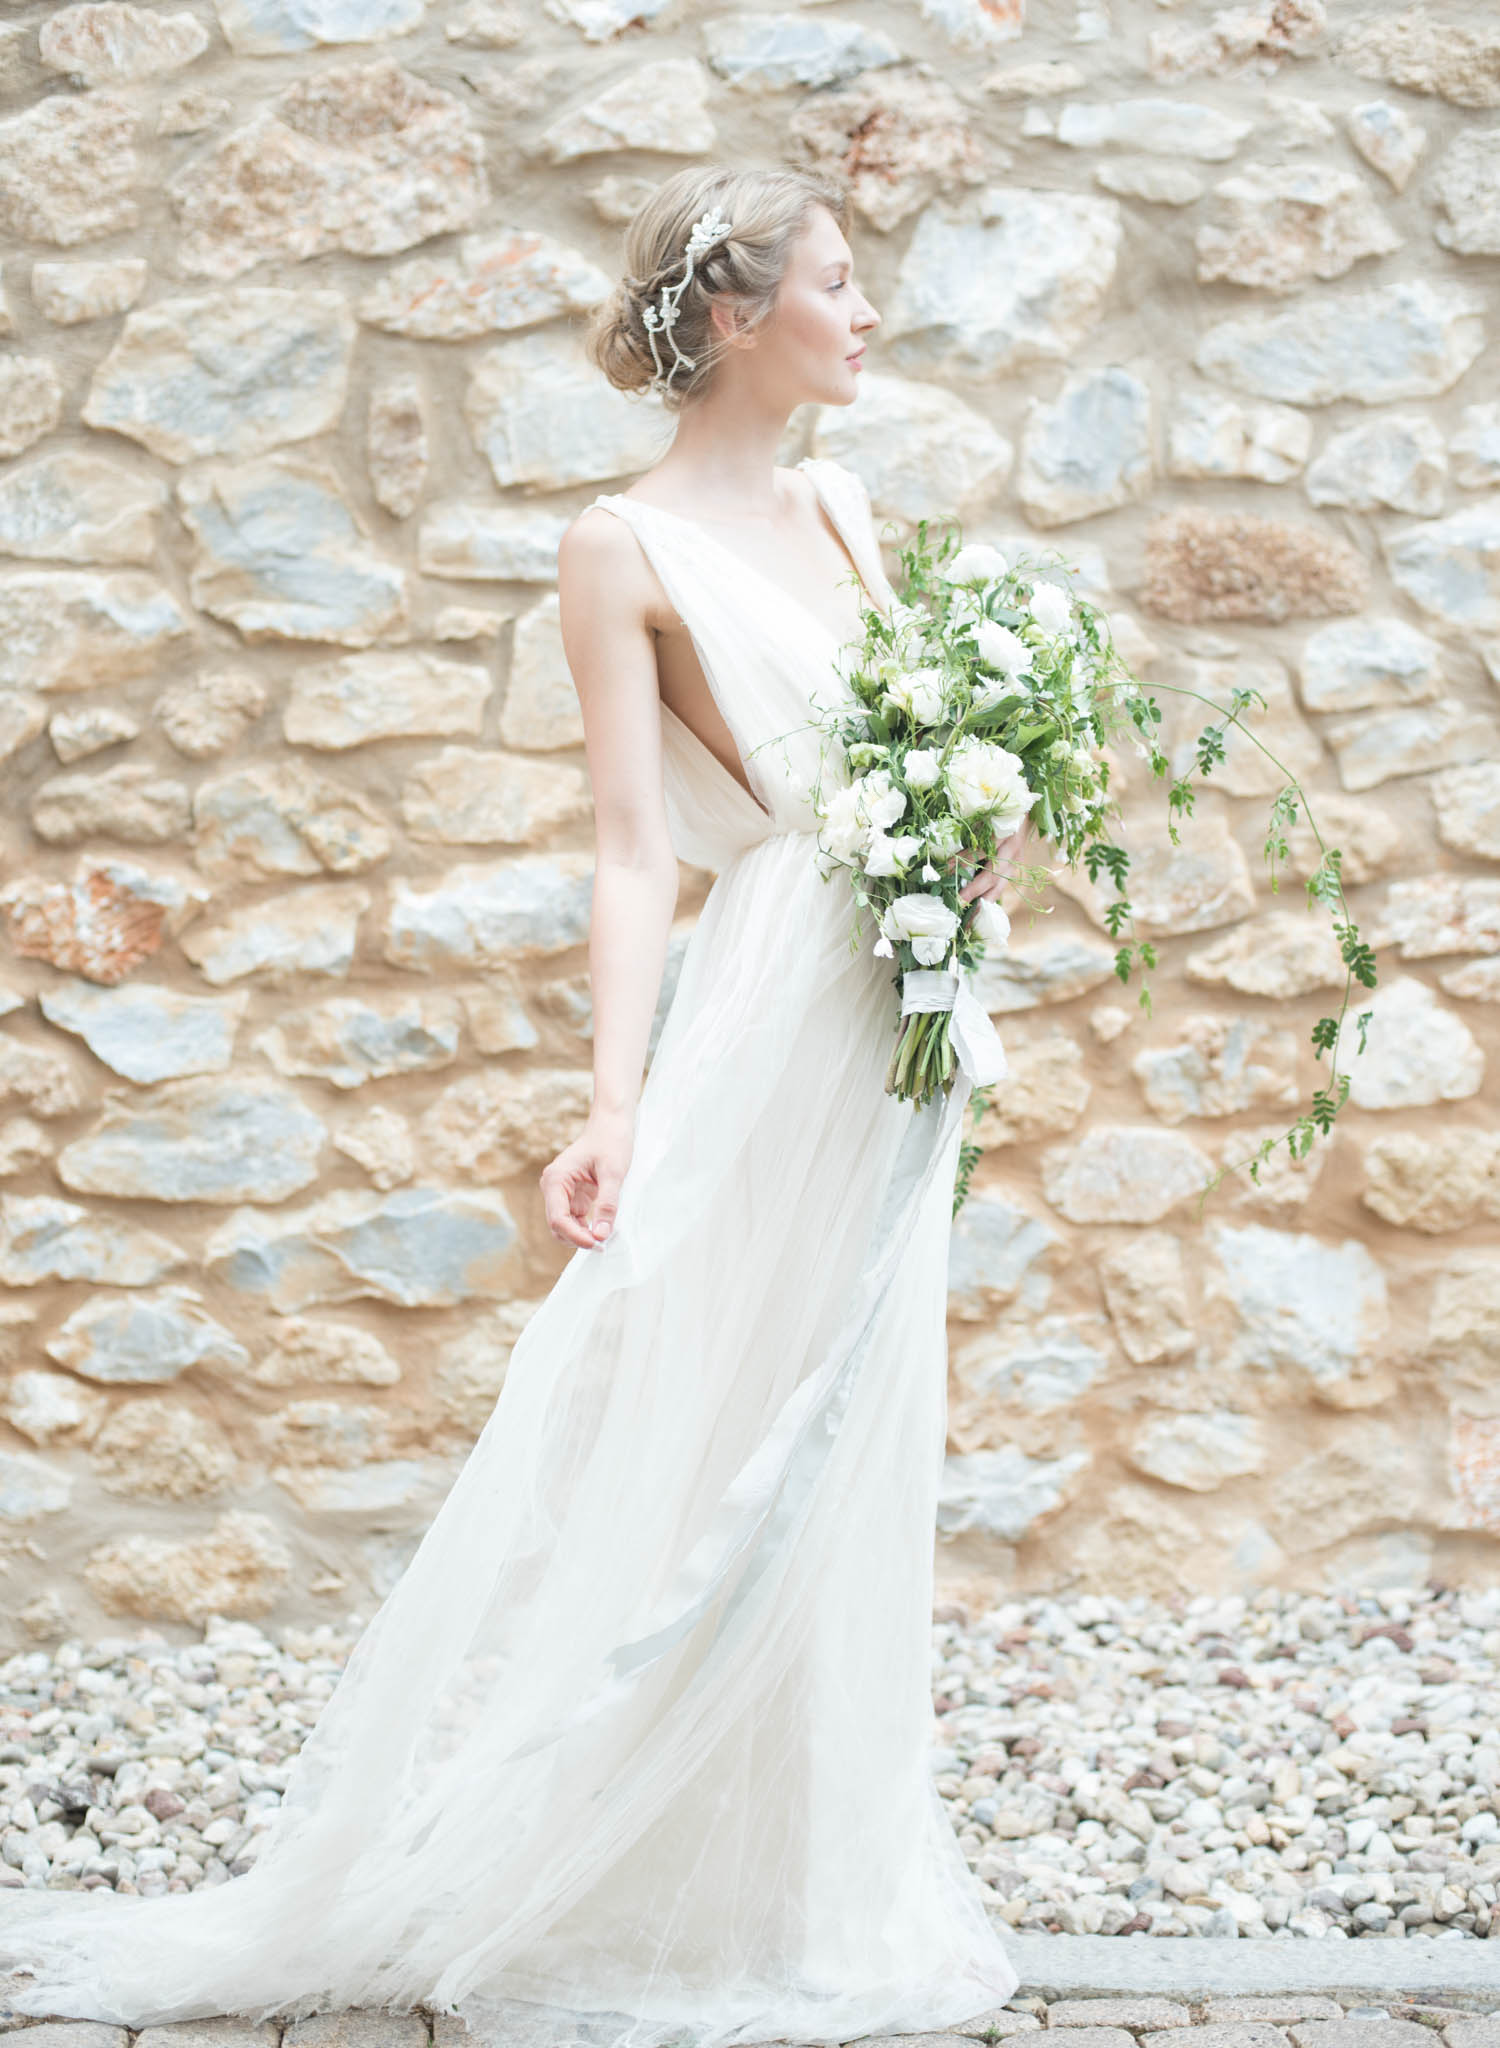 greek goddess bridal inspiration greek goddess wedding dress Greek Goddess Bridal Inspiration